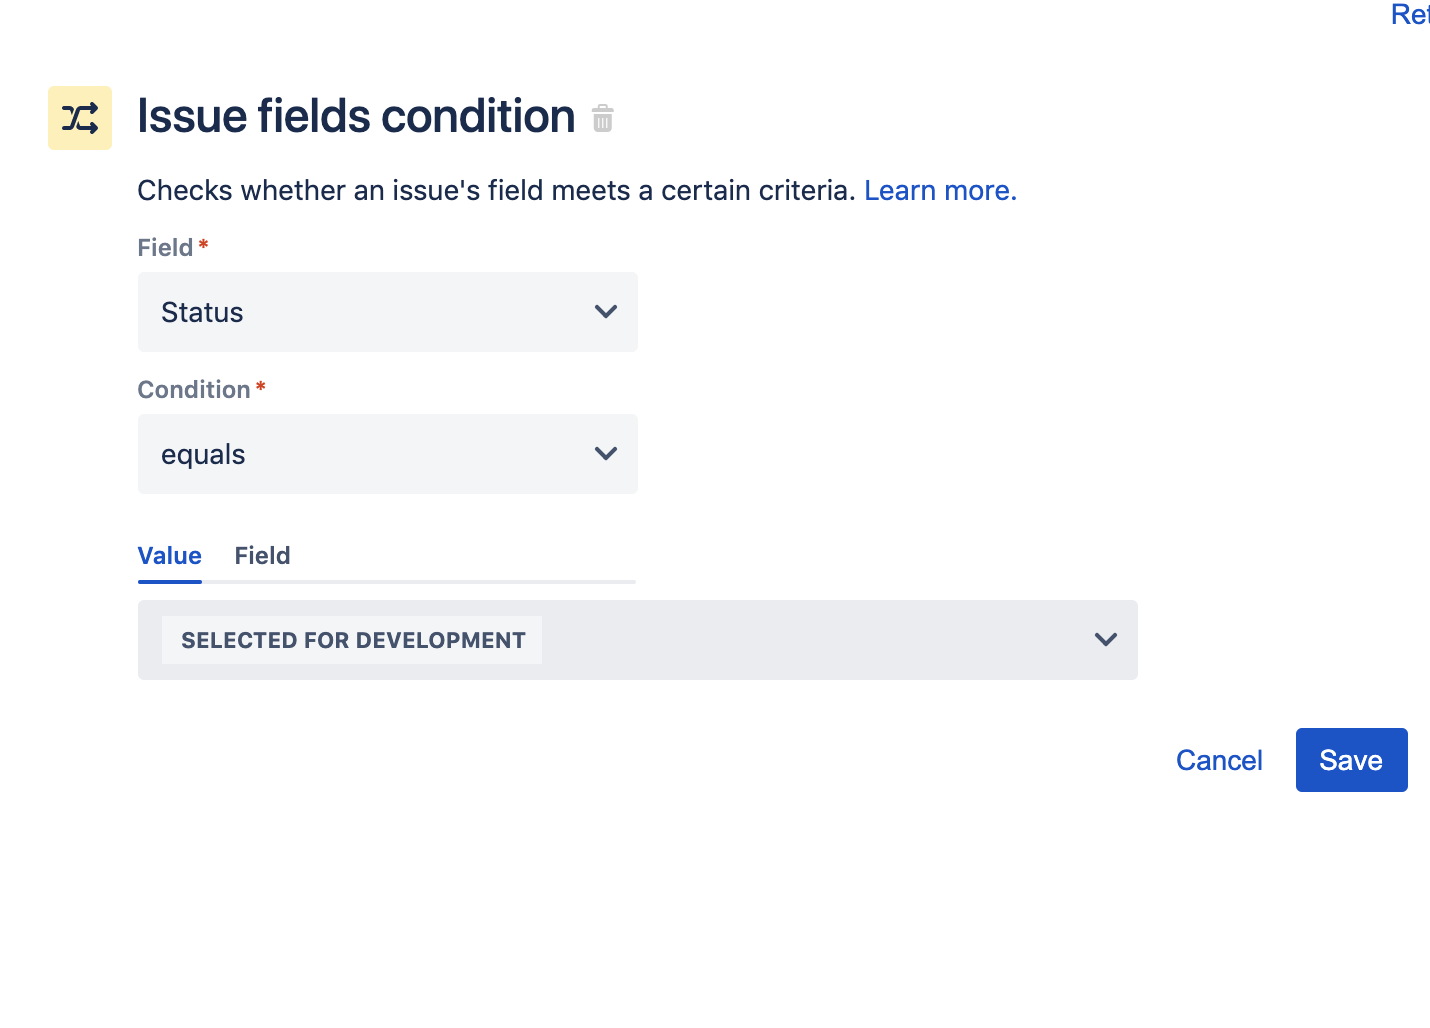 """Issue fields condition. Checks whether an issue's field meets a certain criteria. Field: Status; Condition: equals; Value: """"selected for development"""""""